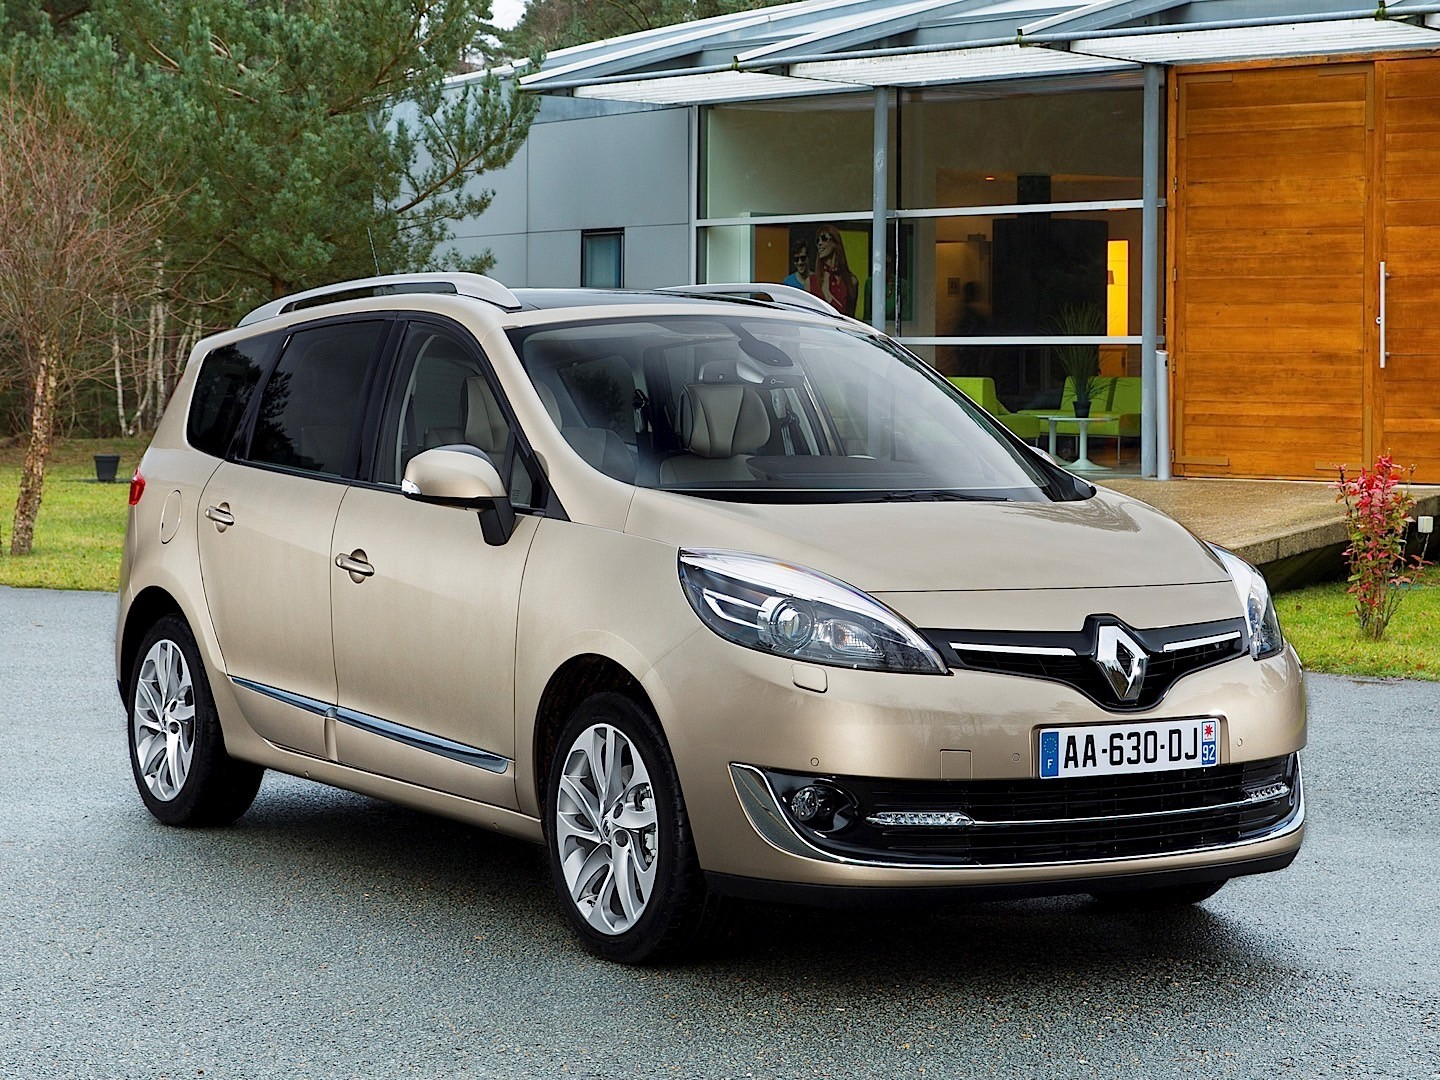 renault grand scenic 2013 2014 2015 2016 2017 autoevolution. Black Bedroom Furniture Sets. Home Design Ideas